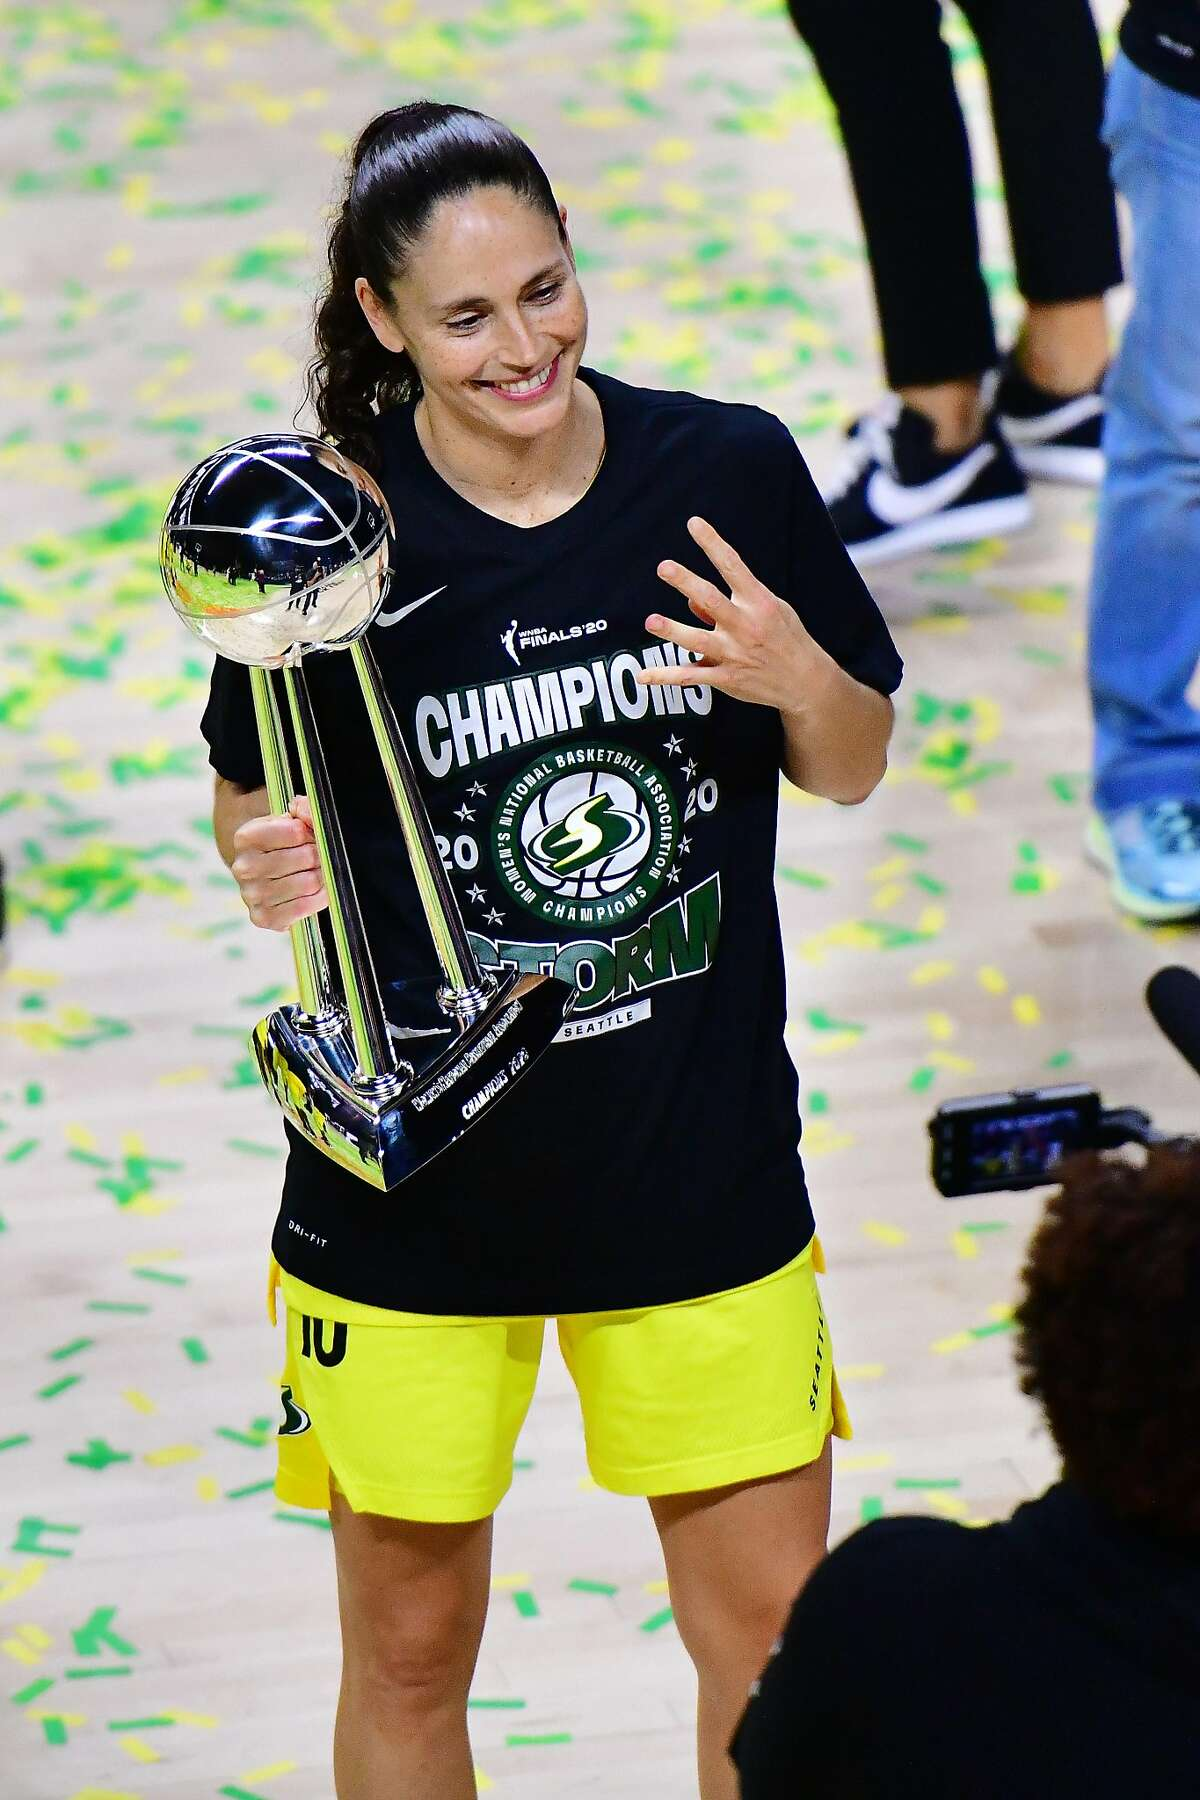 PALMETTO, FLORIDA - OCTOBER 06: Sue Bird #10 of the Seattle Storm celebrates after winning her fourth WNBA championship after defeating the Las Vegas Aces 92-59 during Game 3 of the WNBA Finals at Feld Entertainment Center on October 06, 2020 in Palmetto, Florida. NOTE TO USER: User expressly acknowledges and agrees that, by downloading and or using this photograph, User is consenting to the terms and conditions of the Getty Images License Agreement. (Photo by Julio Aguilar/Getty Images)